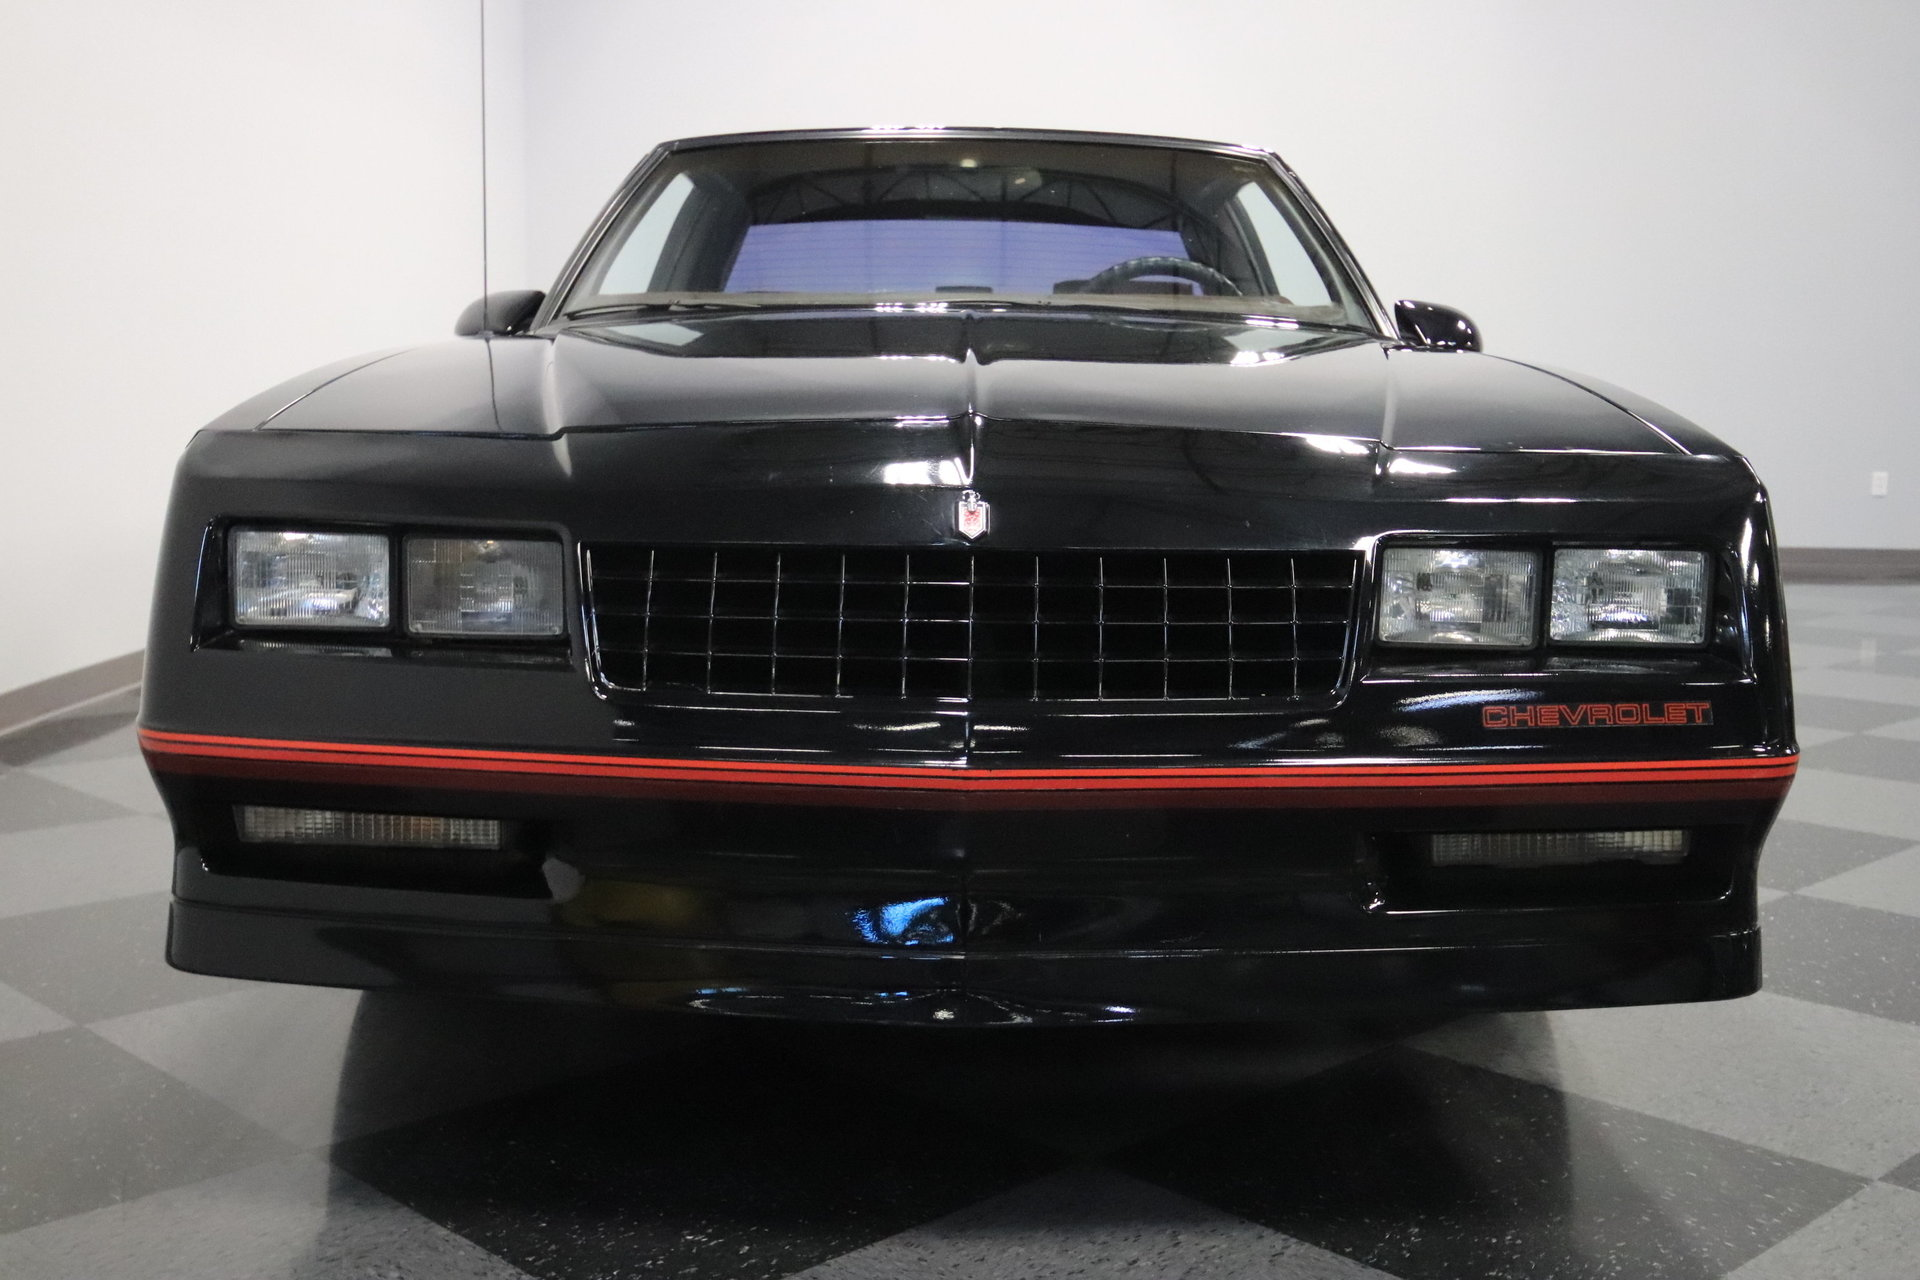 774878fb966a8f_hd_1988-chevrolet-monte-carlo-ss Take A Look About 1980 Monte Carlo for Sale with Mesmerizing Photos Cars Review